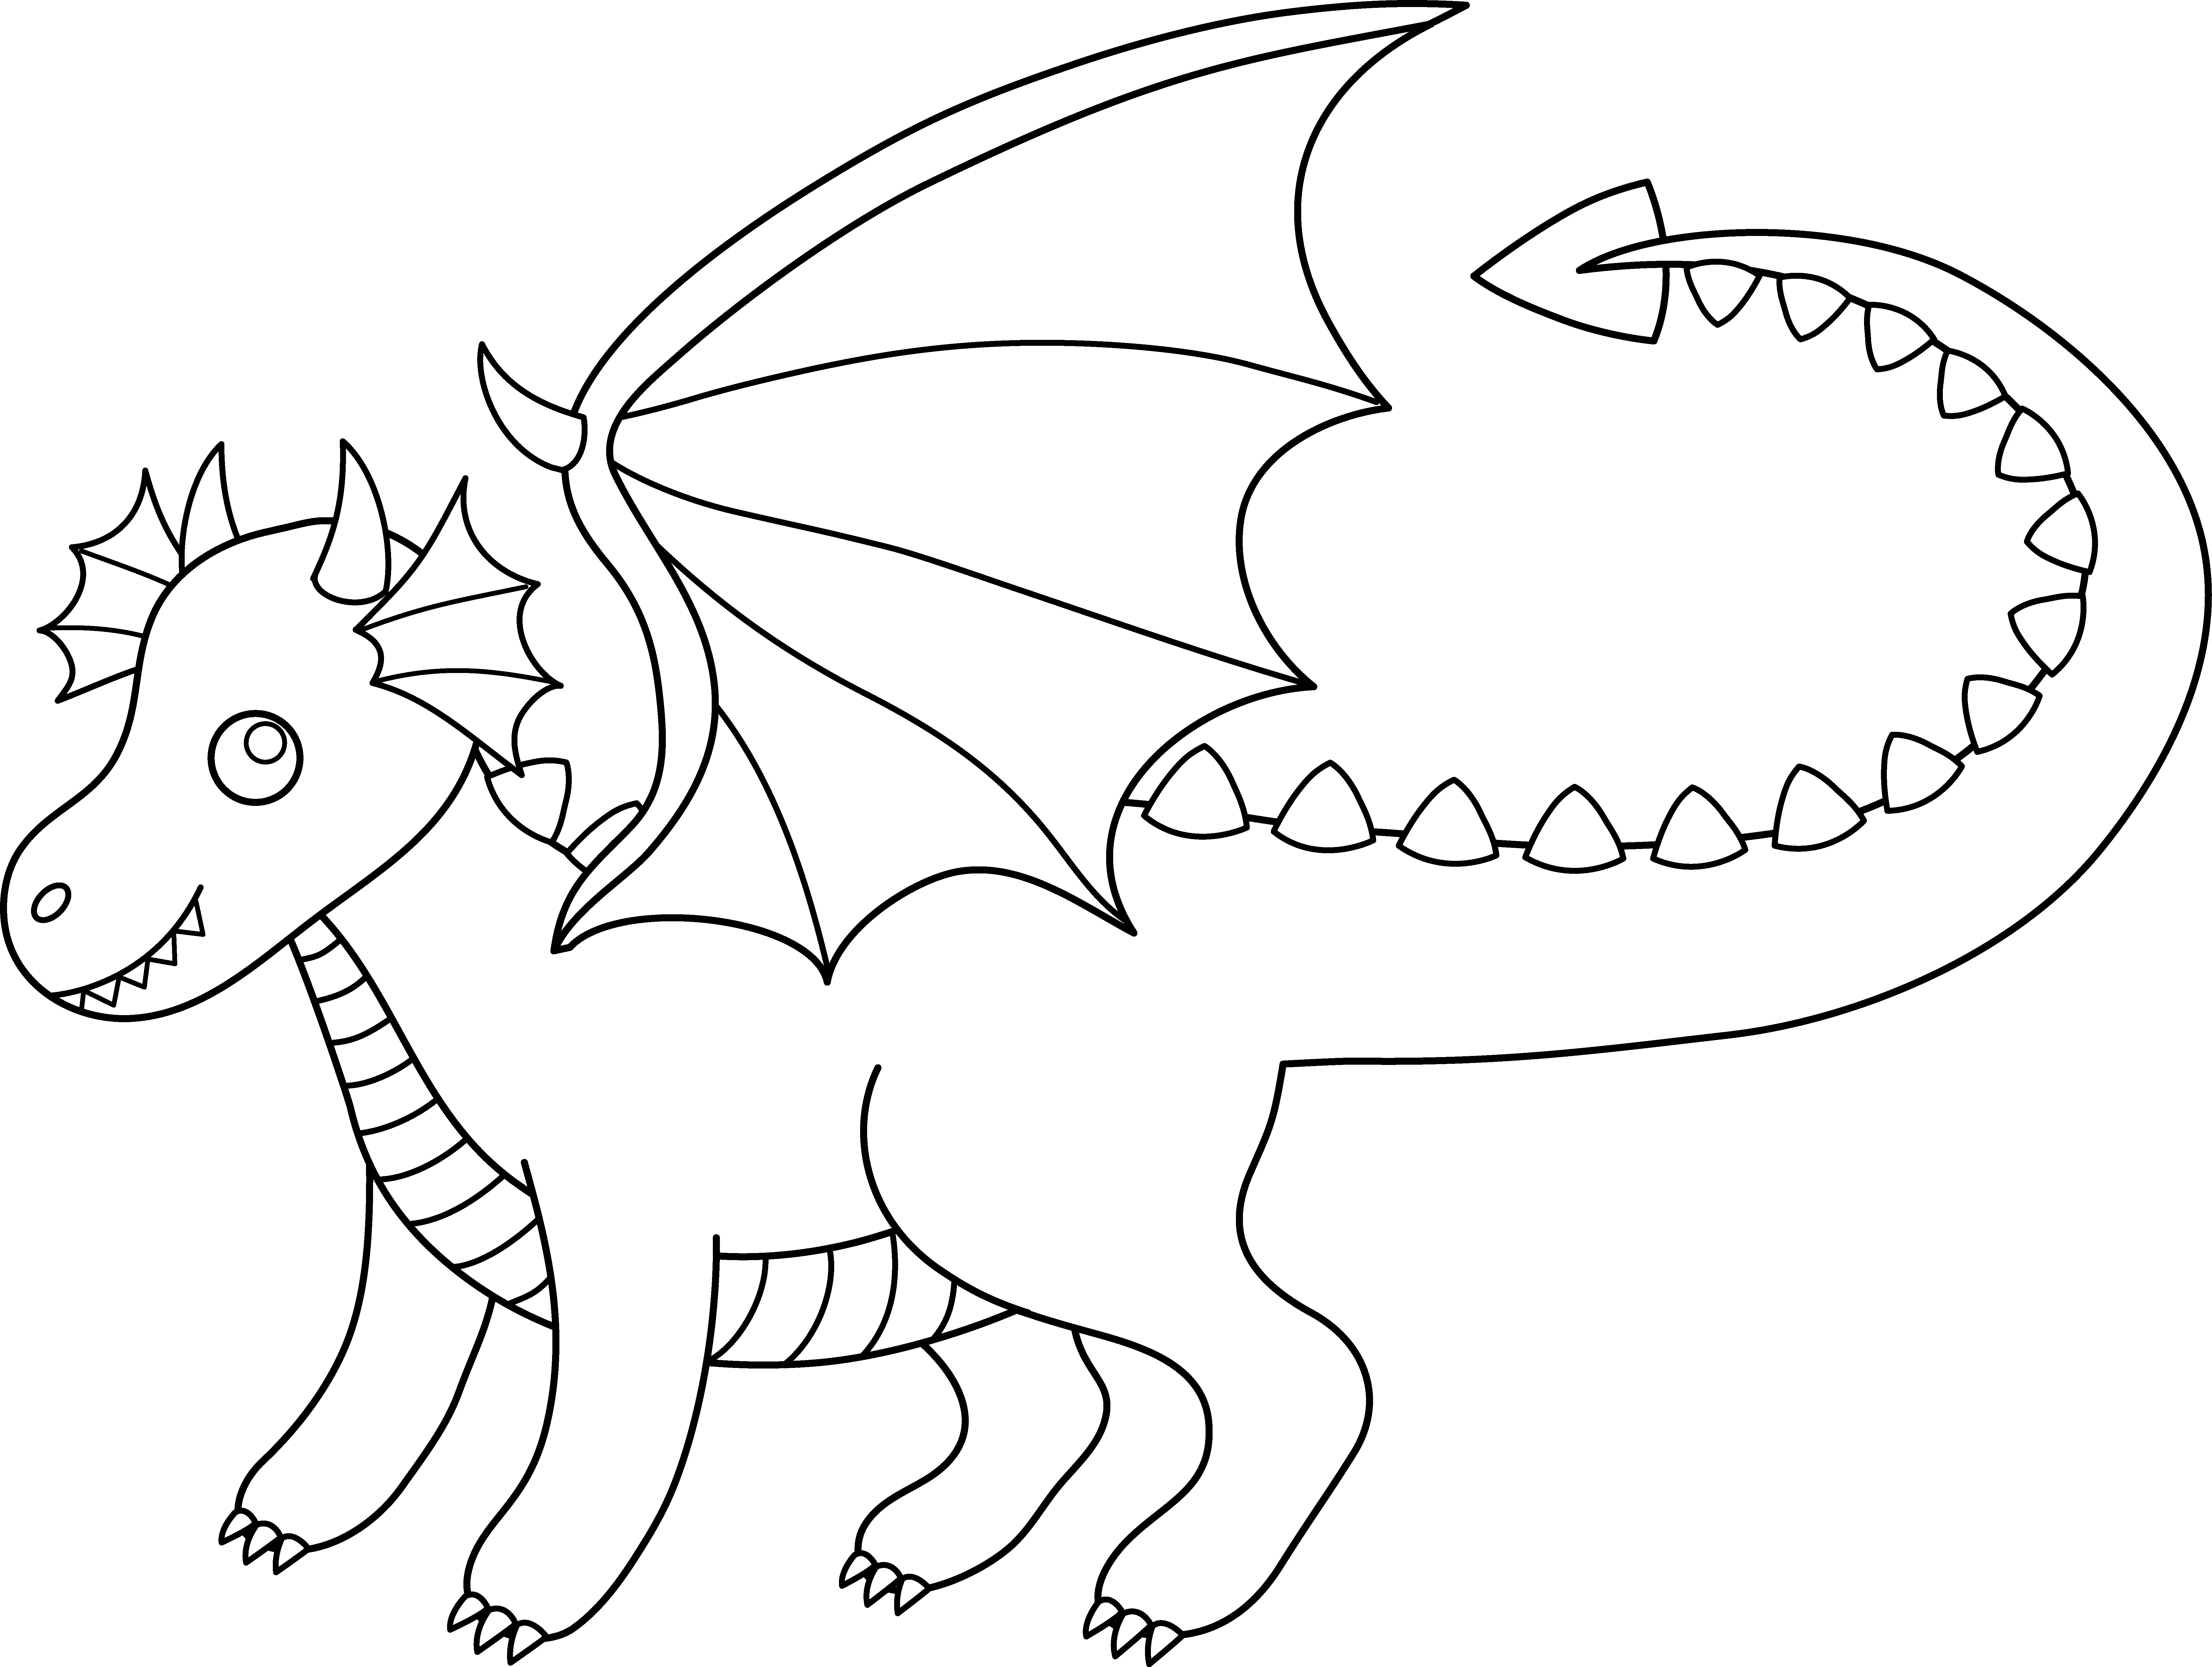 images of dragons to color cute colorable dragon free clip art of to images dragons color